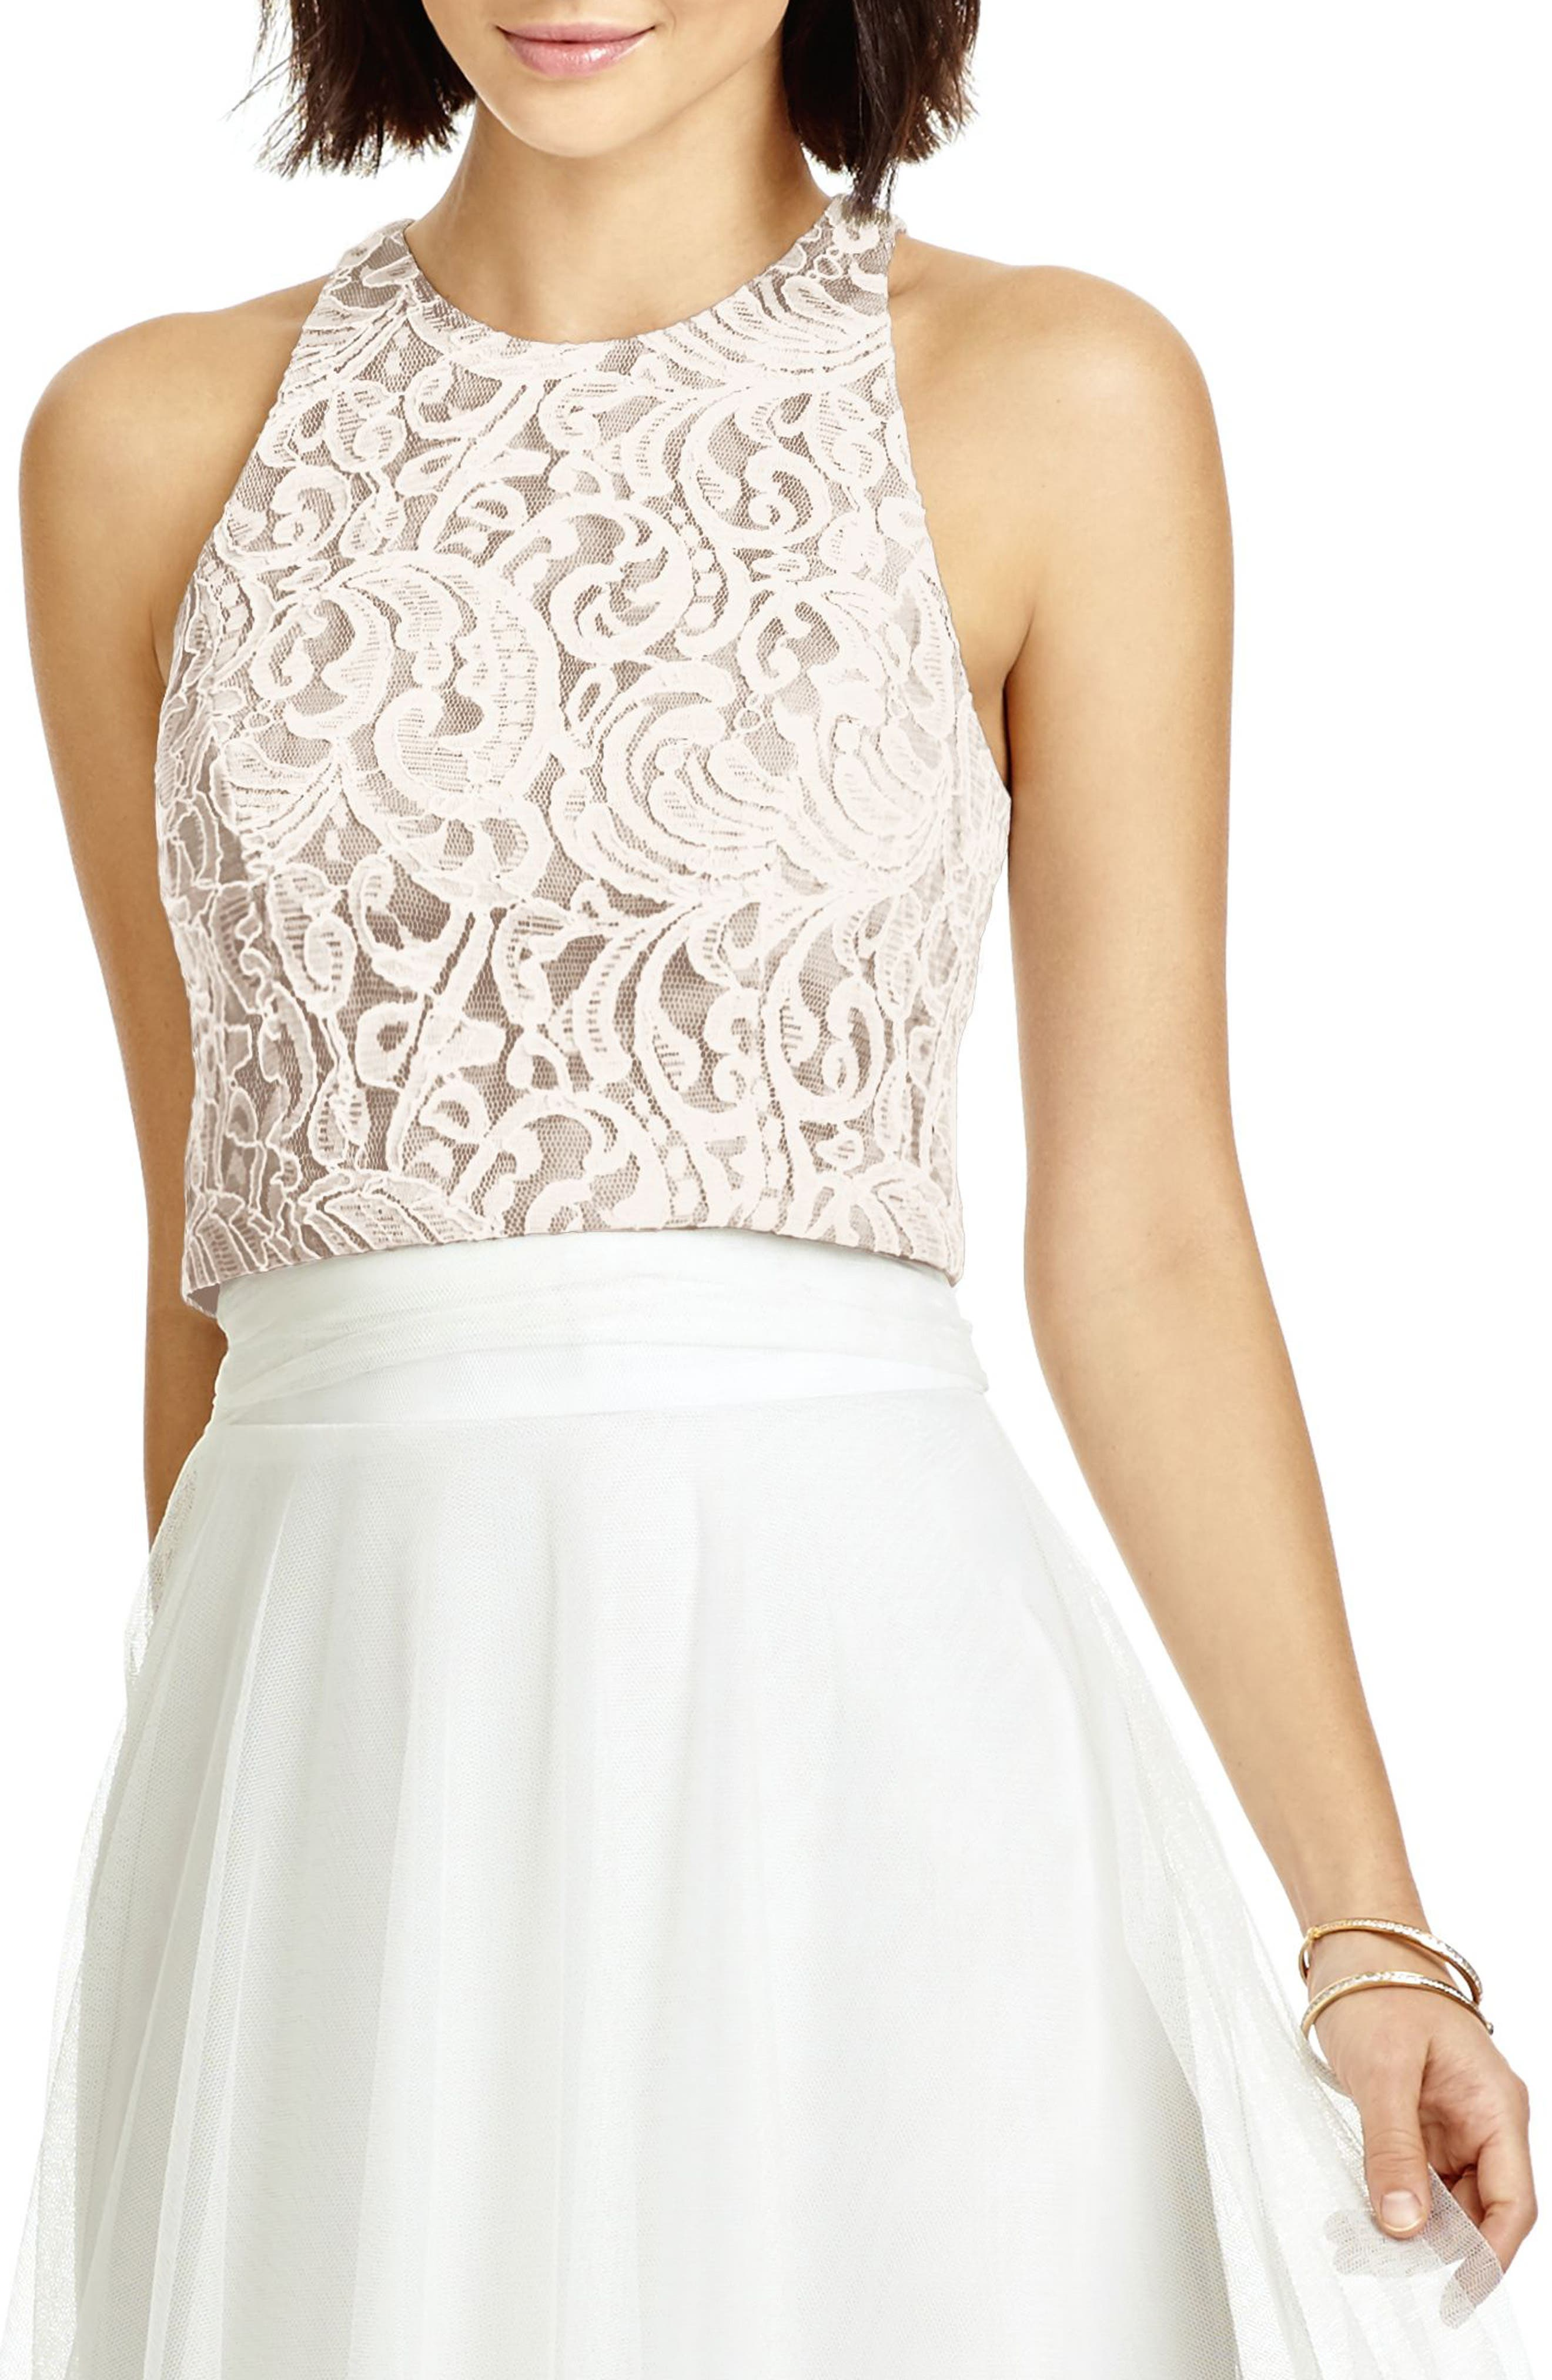 Lace Halter Style Crop Top,                             Alternate thumbnail 2, color,                             IVORY LACE/ TOPAZ/ IVORY